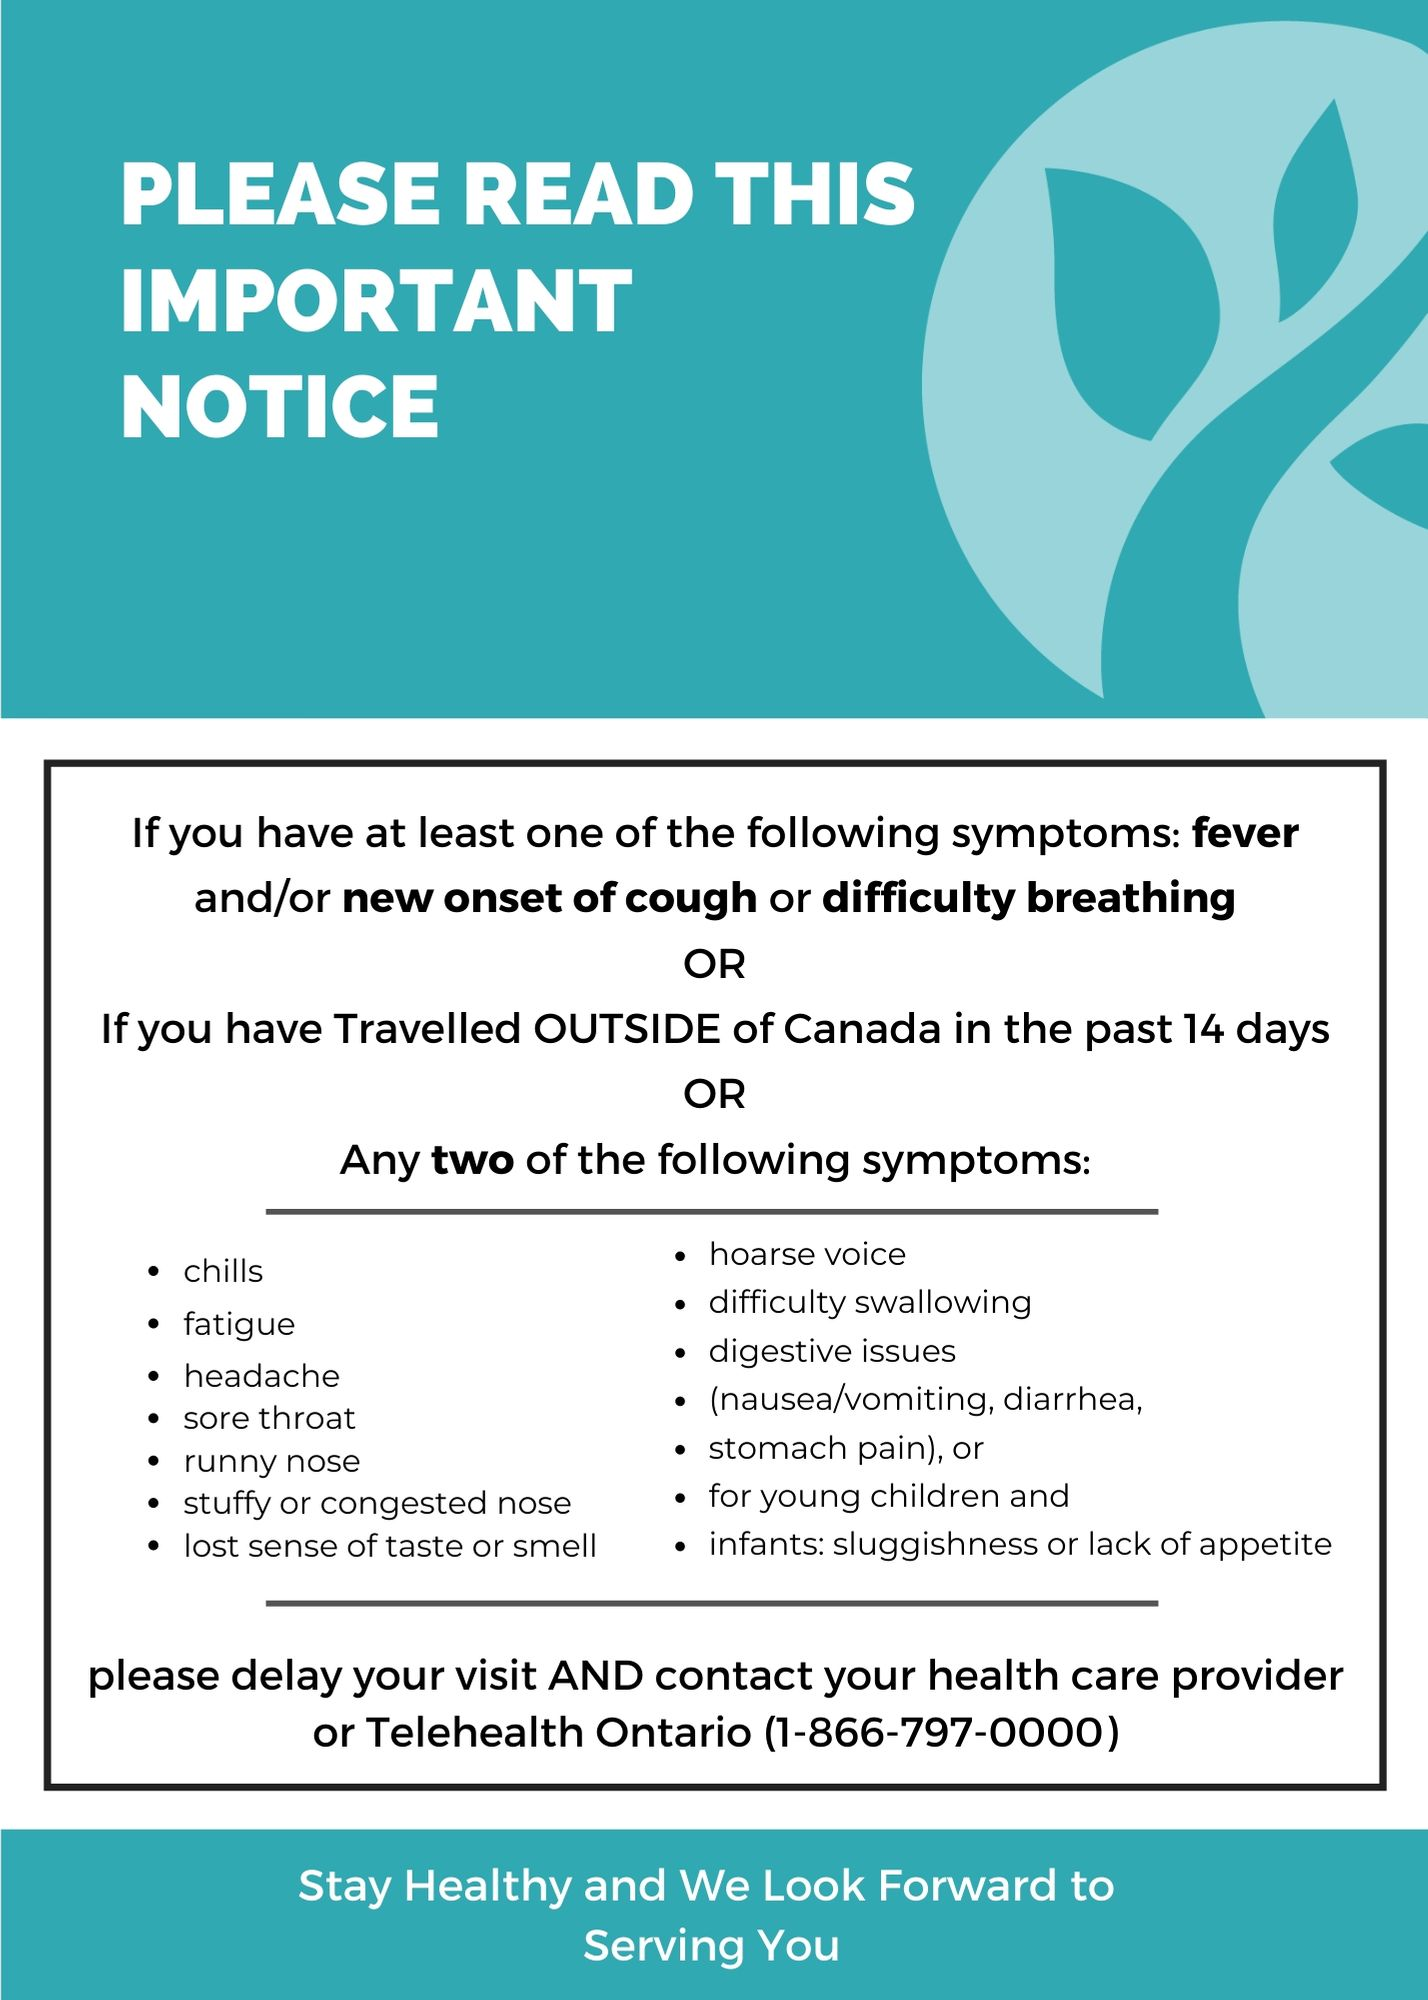 Please read the following COVID-19 screening questions before attending the office for your appointment:   1. Do you have a fever, new onset of cough, worsening chronic cough, shortness of breath, or difficulty breathing?  2. Have you had close contact with anyone with acute respiratory illness or travelled outside of Canada in the past 14 days?  3. Do you have a confirmed case of COVID-19 or had close contact with a confirmed case of COVID-19?  4. Do you have two (2) or more of the following symptoms: sore throat, runny nose/sneezing, nasal congestion, hoarse voice, difficulty swallowing, decrease or loss of sense of smell, chills, headaches, unexplained fatigue/malaise, diarrhea, abdominal pain, or nausea/vomiting?   5. Are you over 65 years of age, and experiencing any of the following: delirium, falls, acute functional decline, or worsening of chronic conditions?   If you have answered yes to any of these questions, you should : • not attend the office for at least 14 days; • complete the Ontario Government's self-assessment; and • contact an appropriate authority such as your family physician, the local medical officer of health or Telehealth Ontario